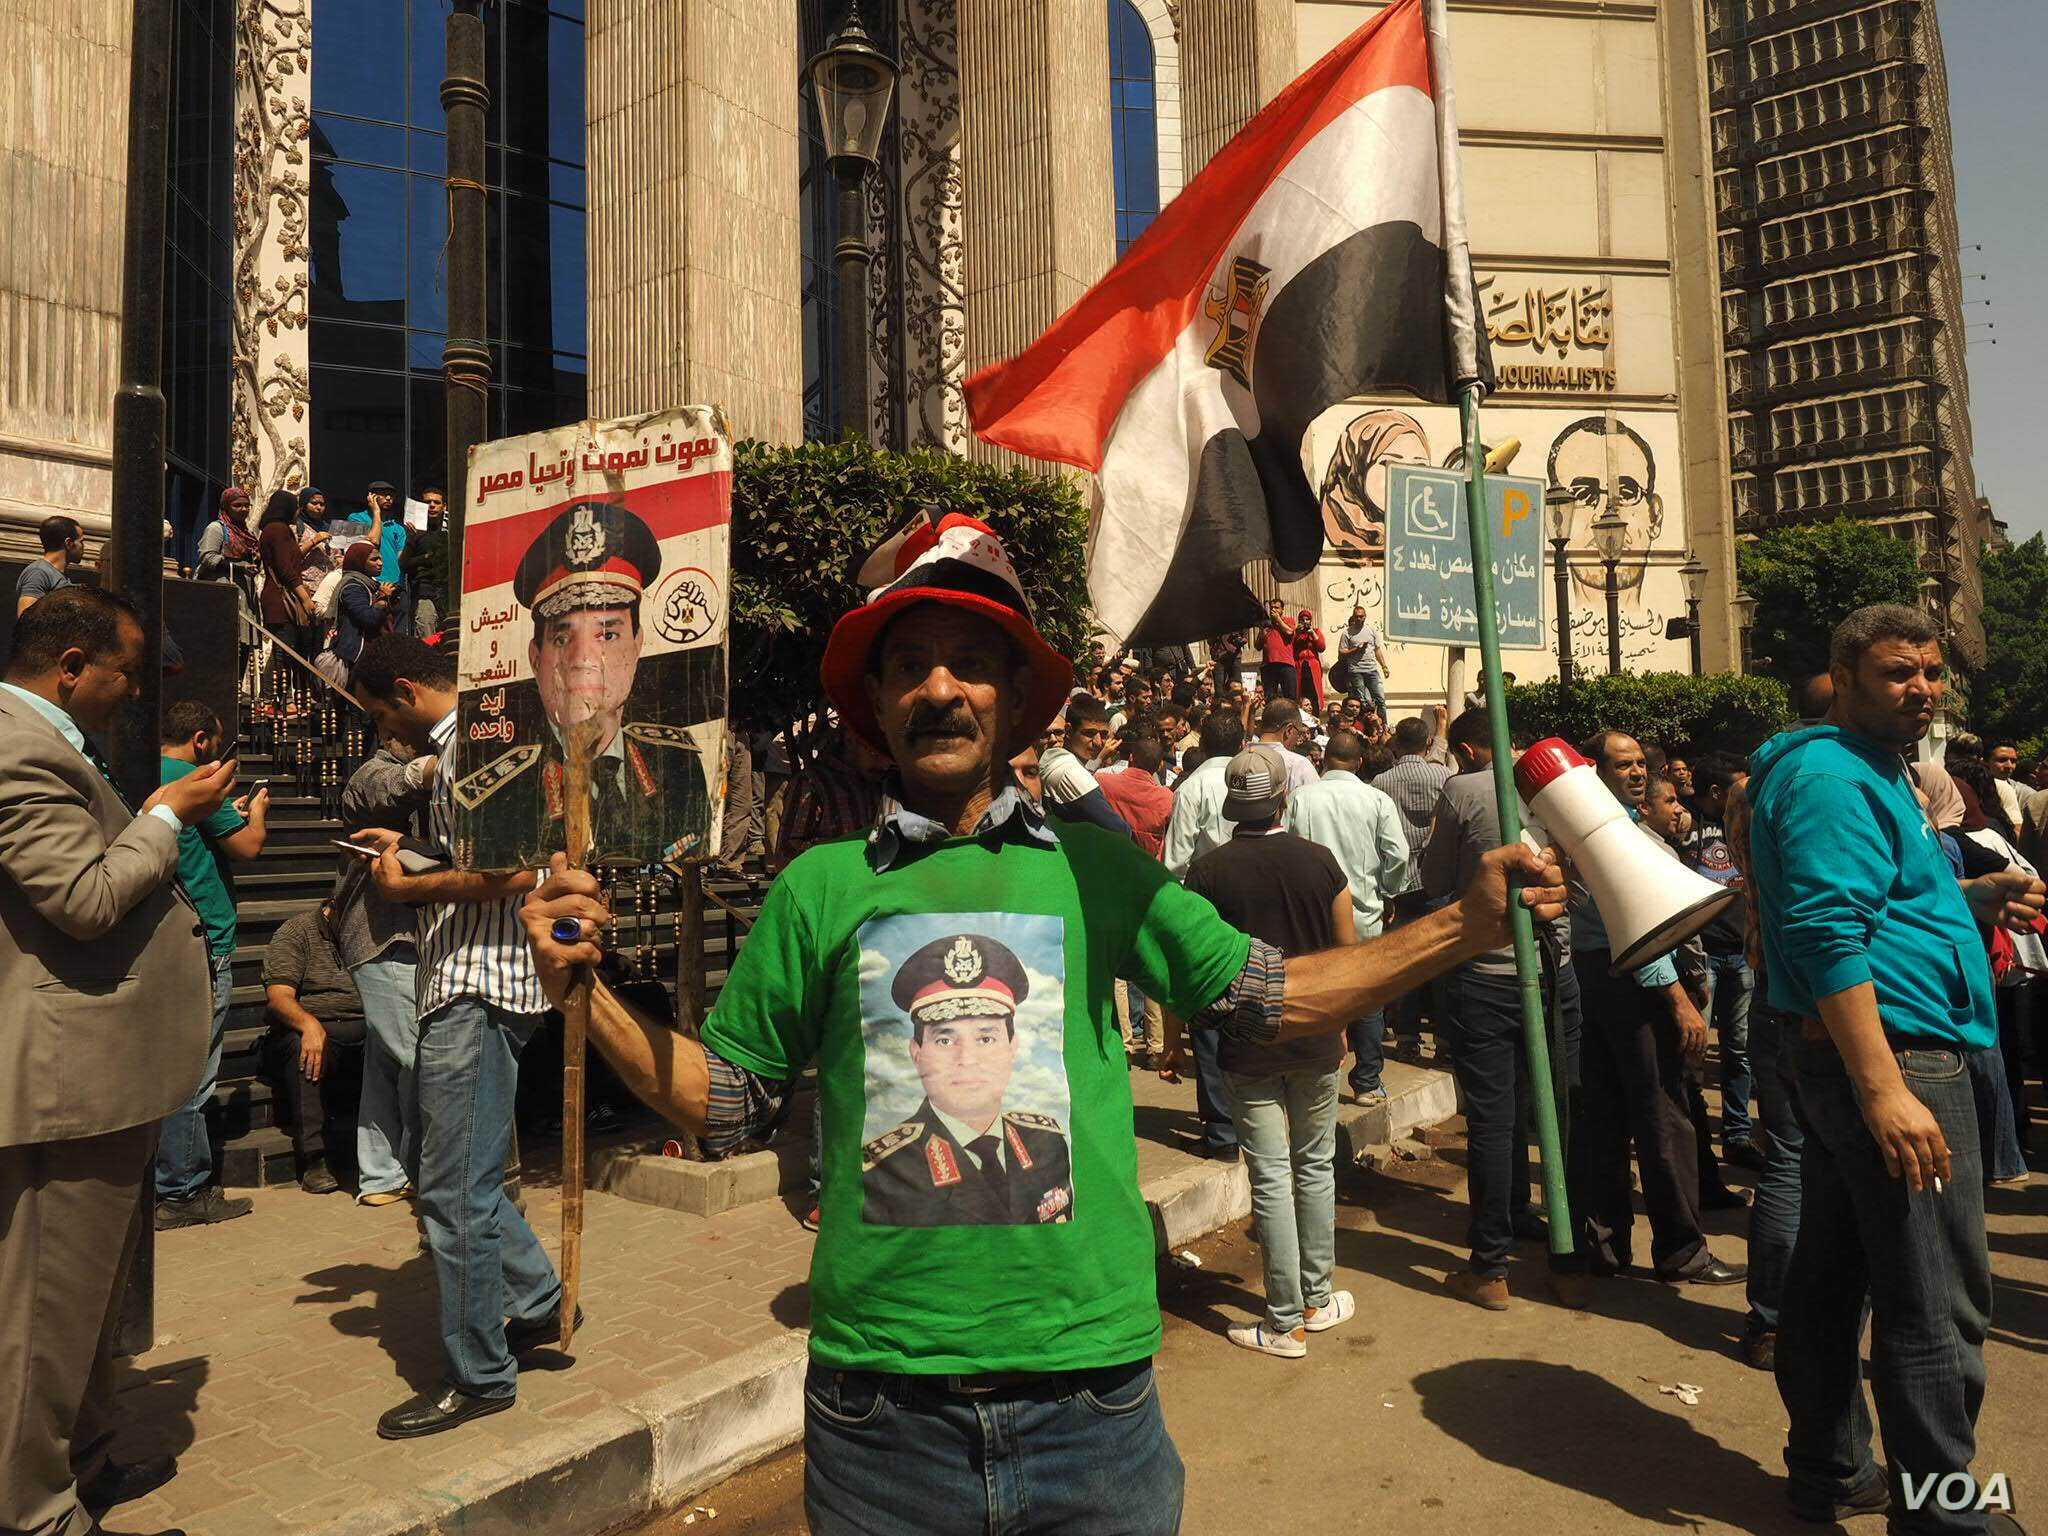 A government supporter holds the Egyptian flag and a poster of President Abdel-Fattah el-Sissi at a mostly anti-government protest in downtown Cairo, April 15, 2016. (VOA/H. Elrasam)